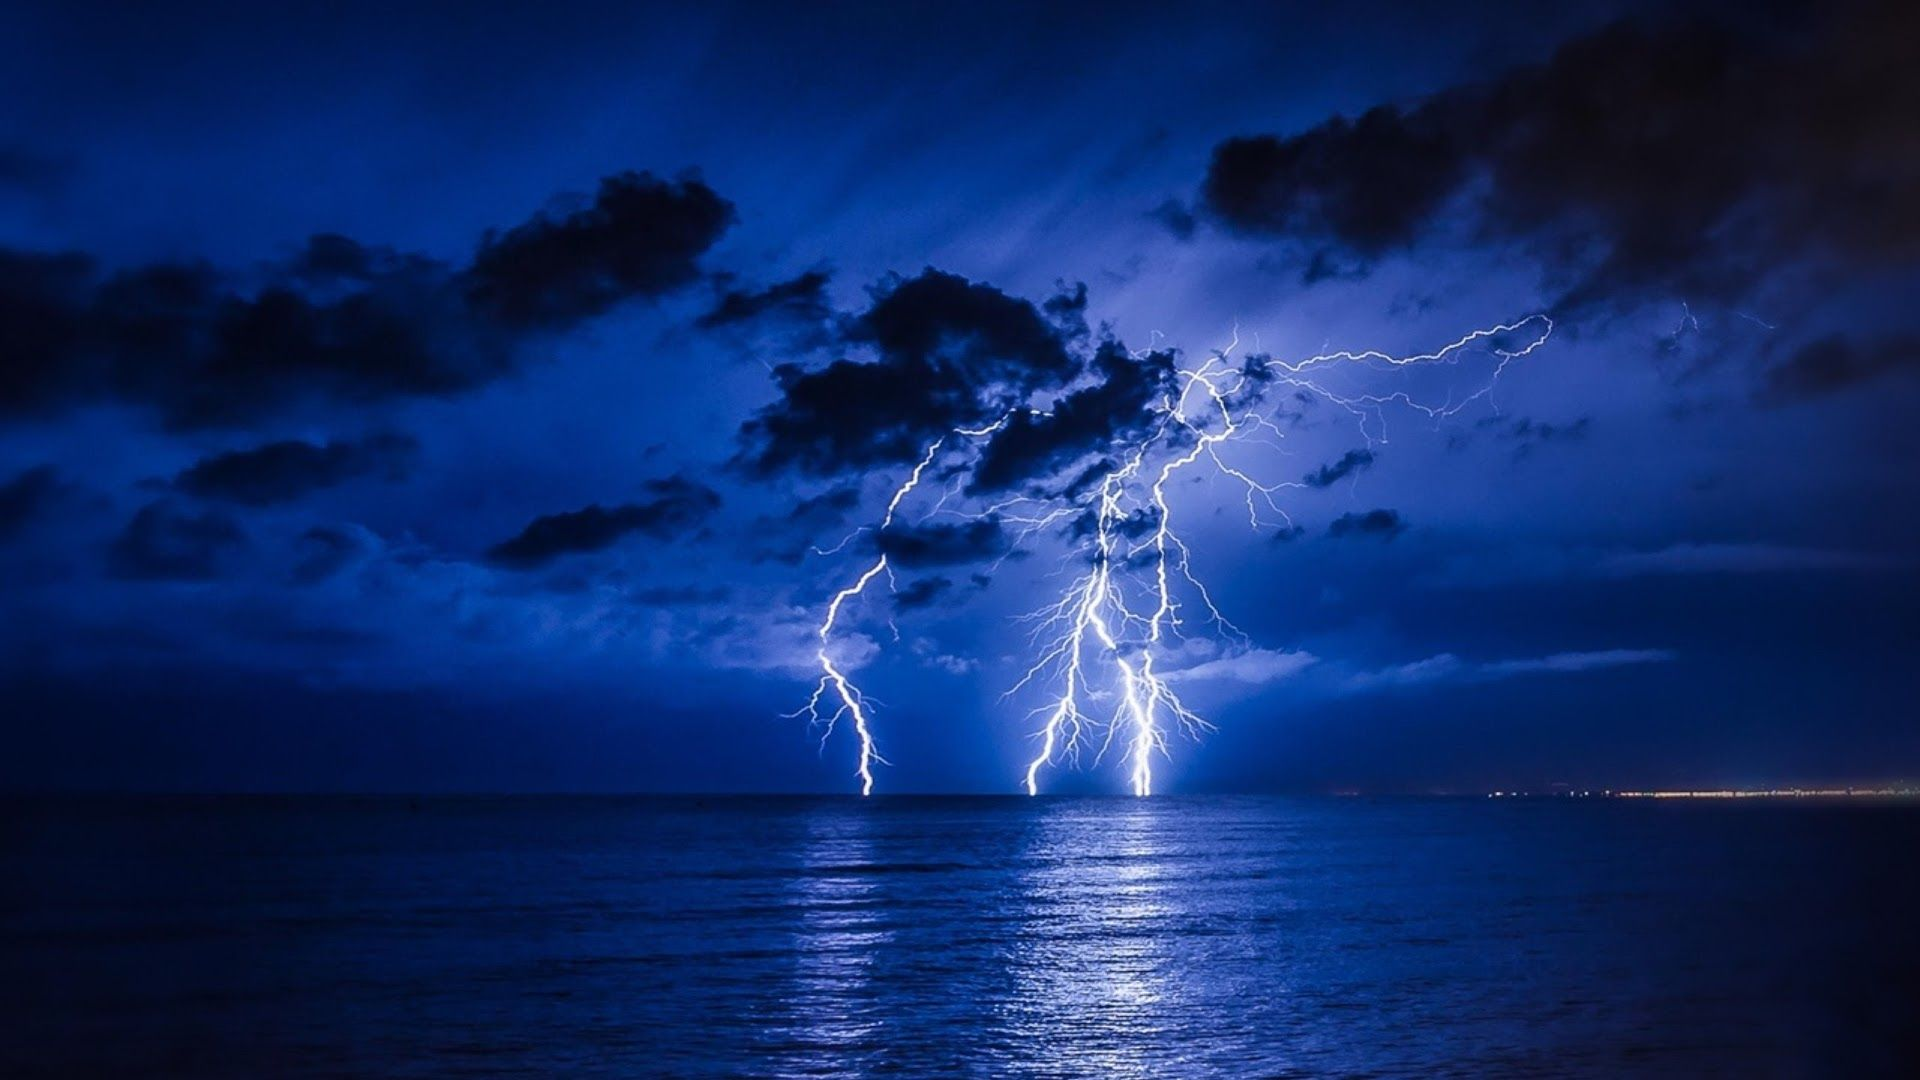 Lightning Bolt download free wallpapers for pc in hd